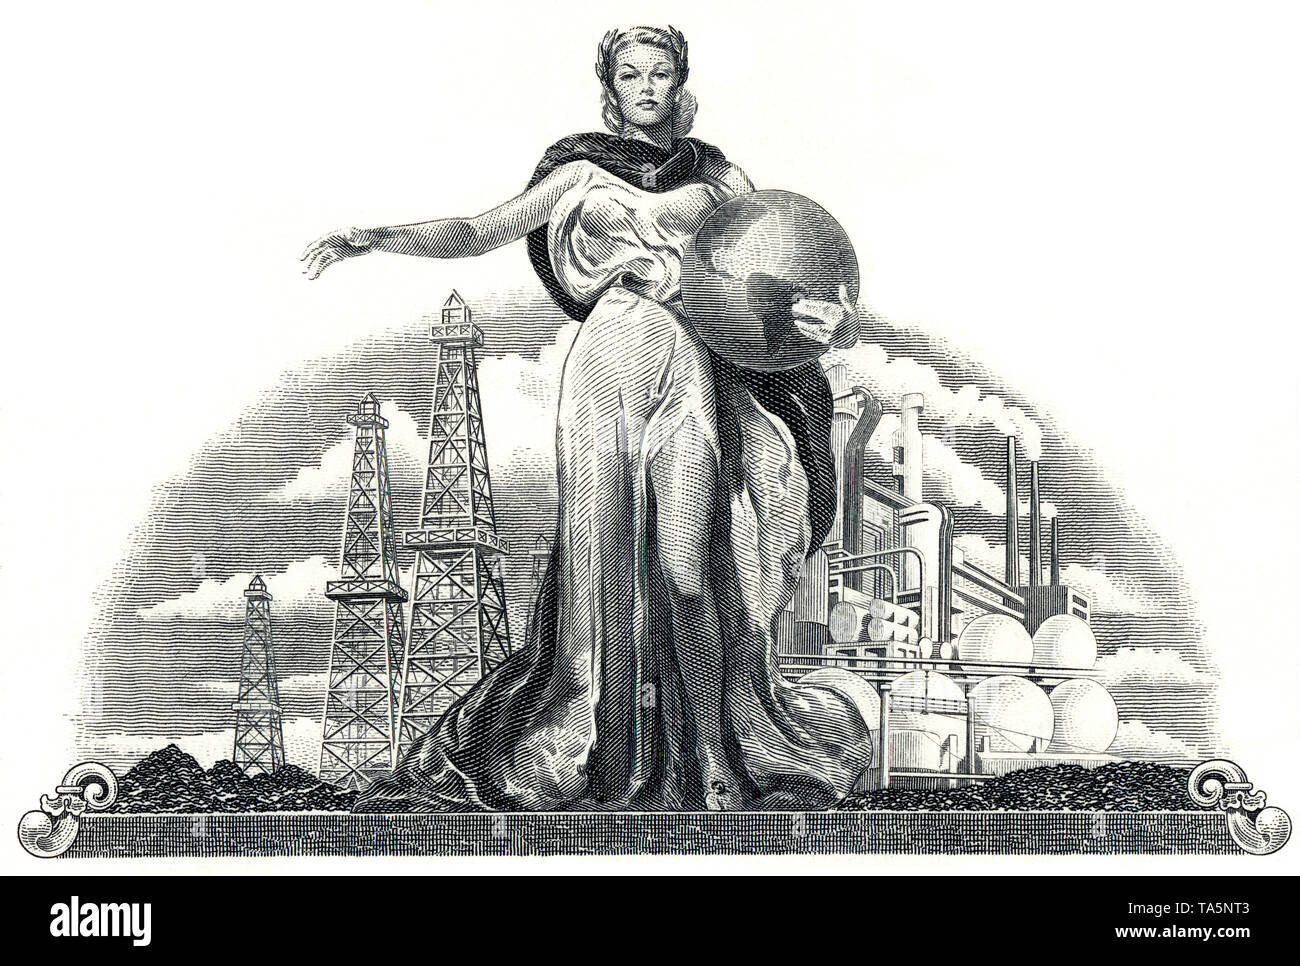 Illustration in the vignette of a historical stock certificate of an oil and gas company, a young woman holding a globe in front of oil rigs and an oil refinery, Belco Petroleum Corporation, now Belco Oil & Gas Corporation, Delaware, USA, 1976, Detail, Zeichnug in der Vignette, Wertpapier, historische Aktie, Mineralöl- und Erdgasunternehmen,  Motiv: Eine junge Frau hält die Weltkugel vor Bohrtürmen und einer Erdöl-Raffinerie, Belco Petroleum Corporation,  heute Belco Oil & Gas Corporation, 1976, Delaware, USA - Stock Image